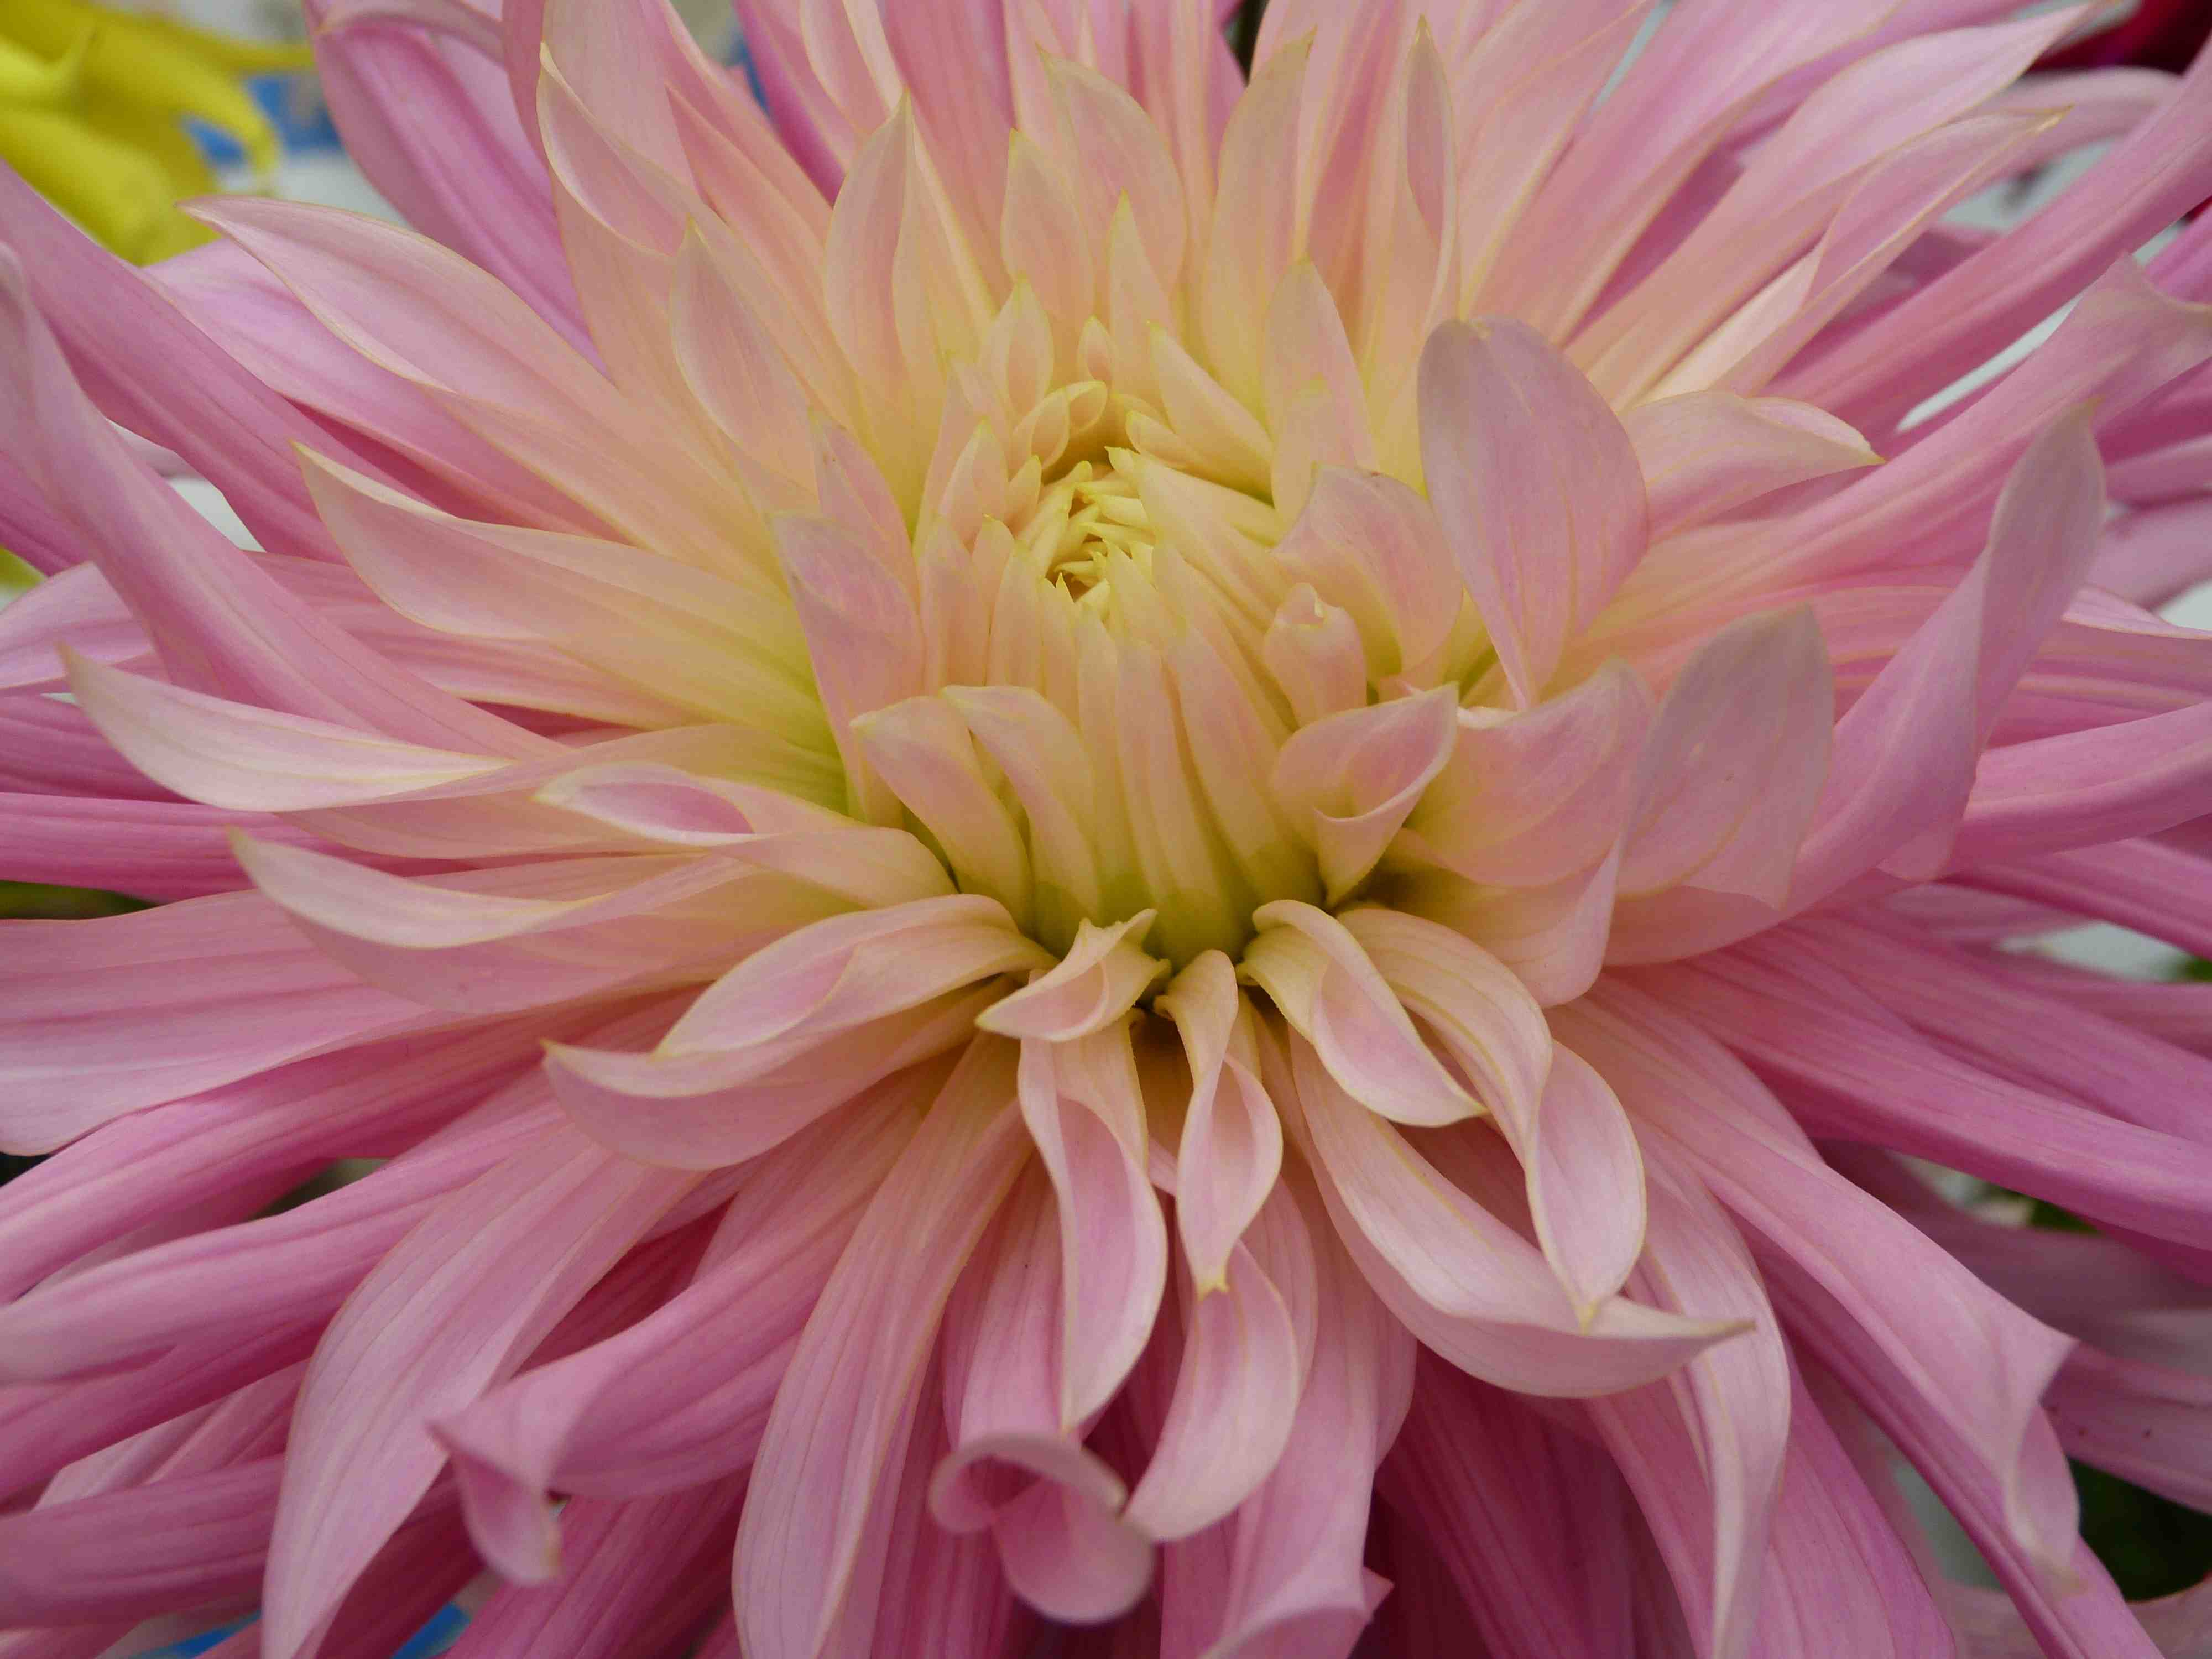 View thumbnails of dahlias by San Francisco artist Sarah Curtiss.